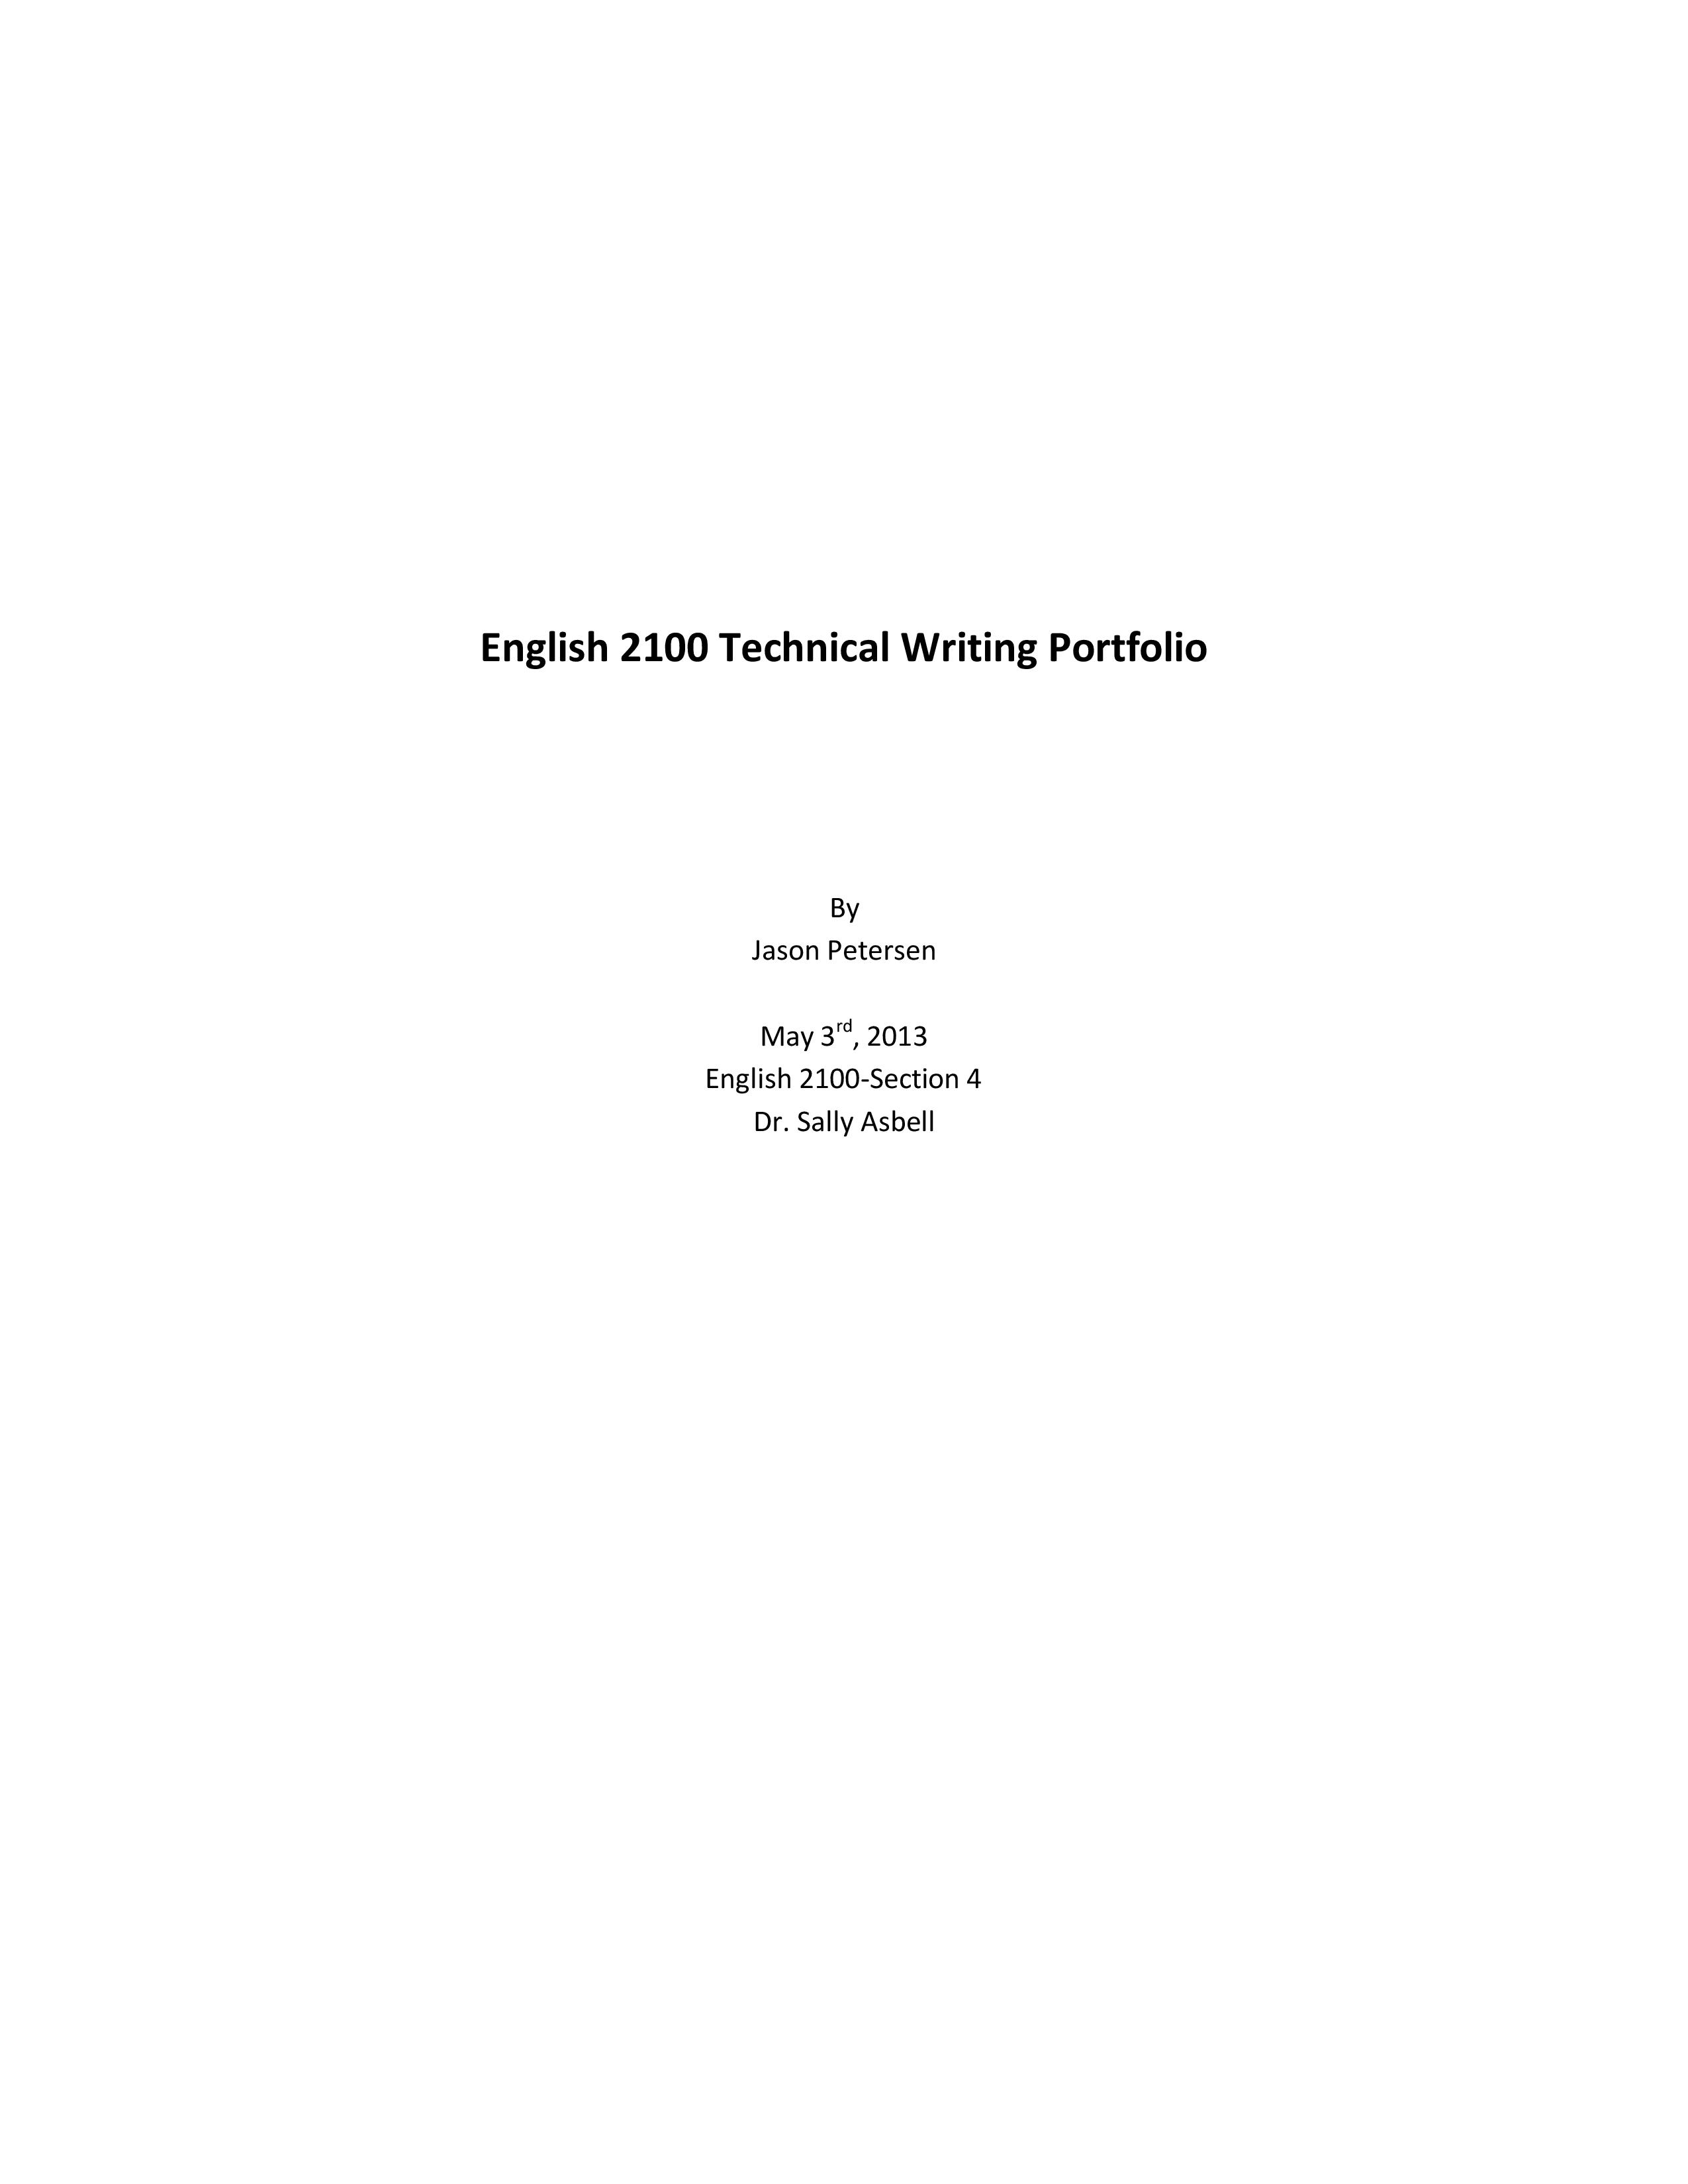 how to end an application letter in english